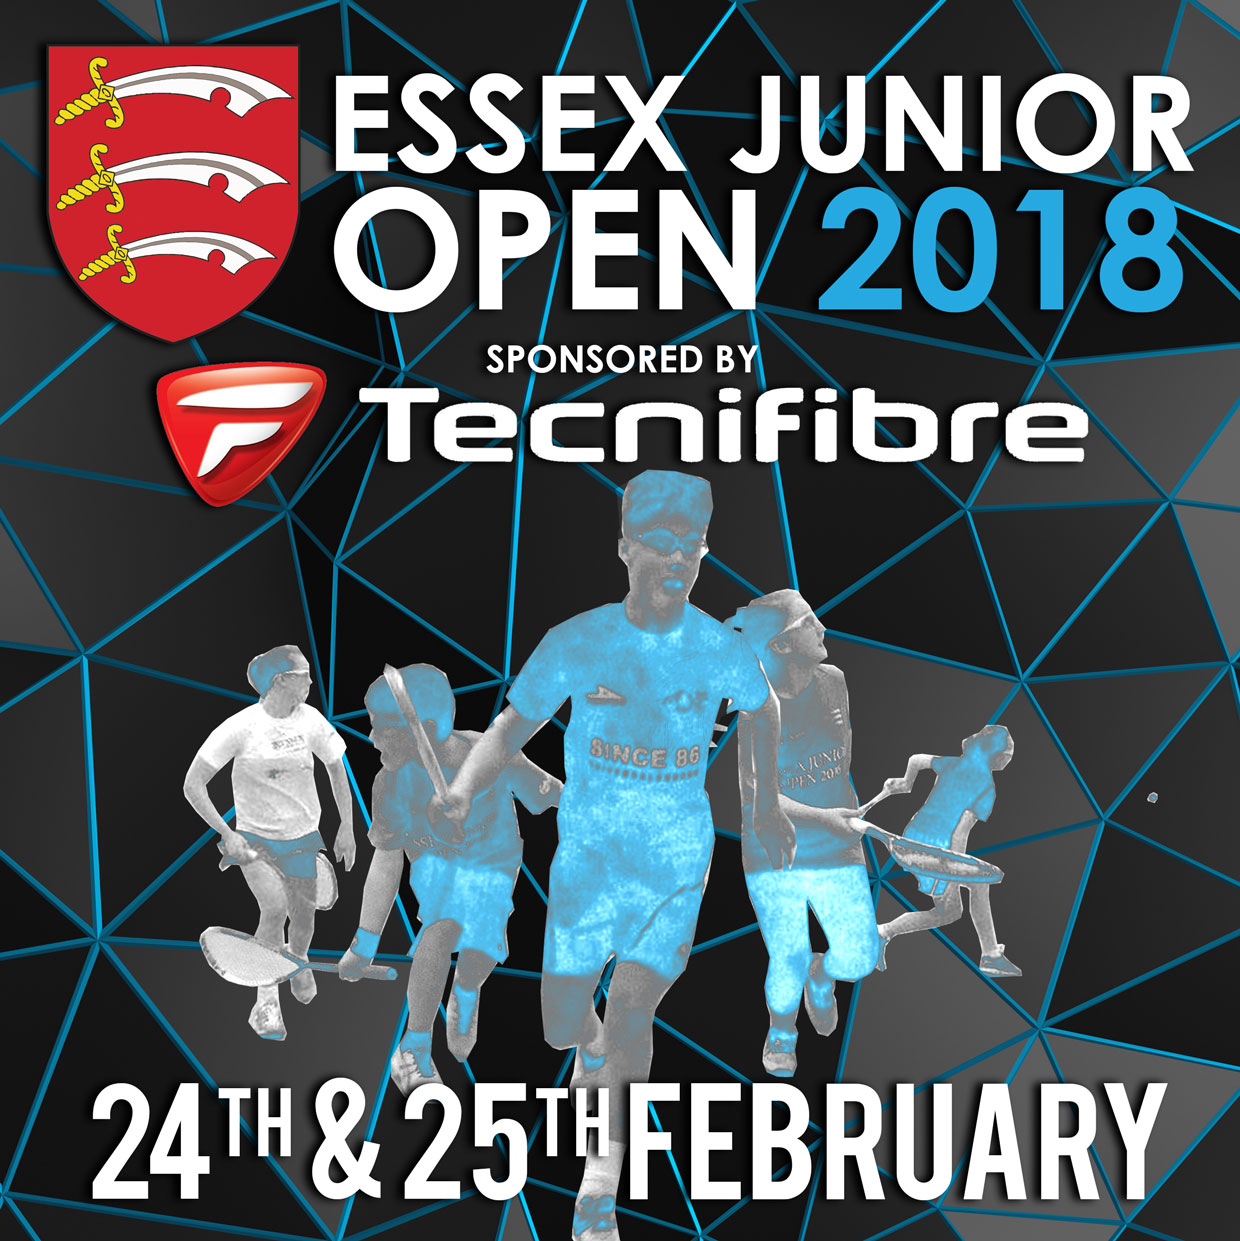 Essex Junior Open heading for Colchester on Feb 24-25